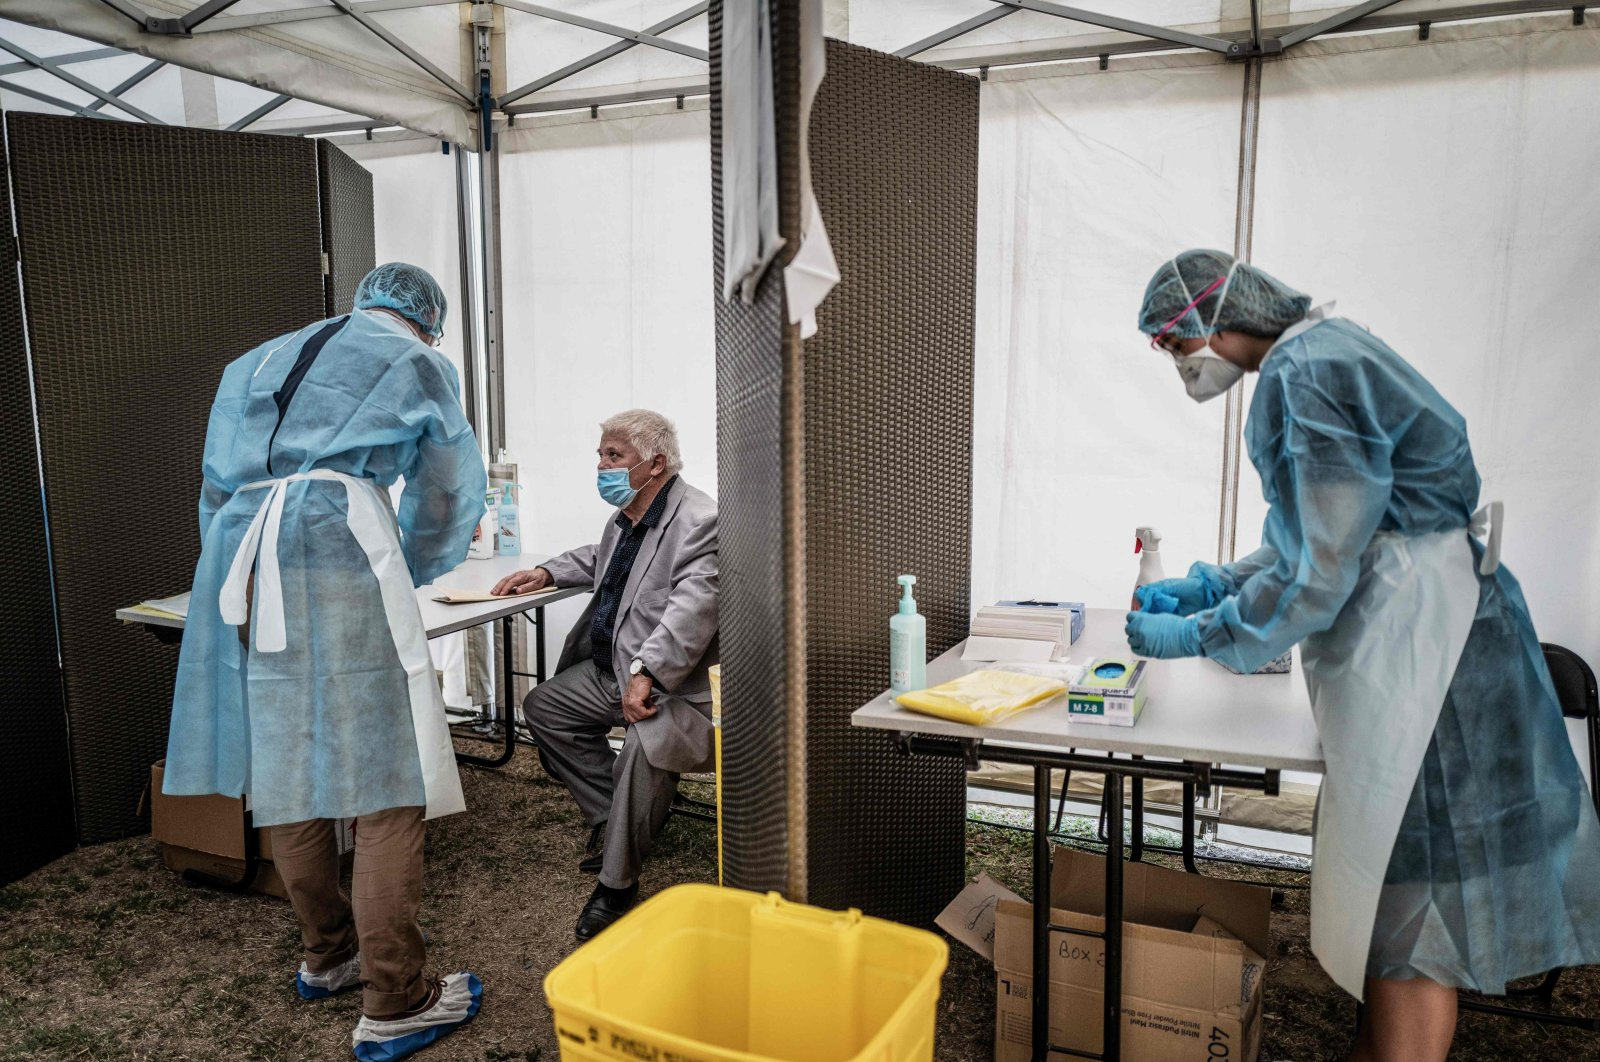 Medical staff with protective gear conduct tests for COVID-19, Venissieux, eastern France, Sept. 11, 2020. (AFP Photo)